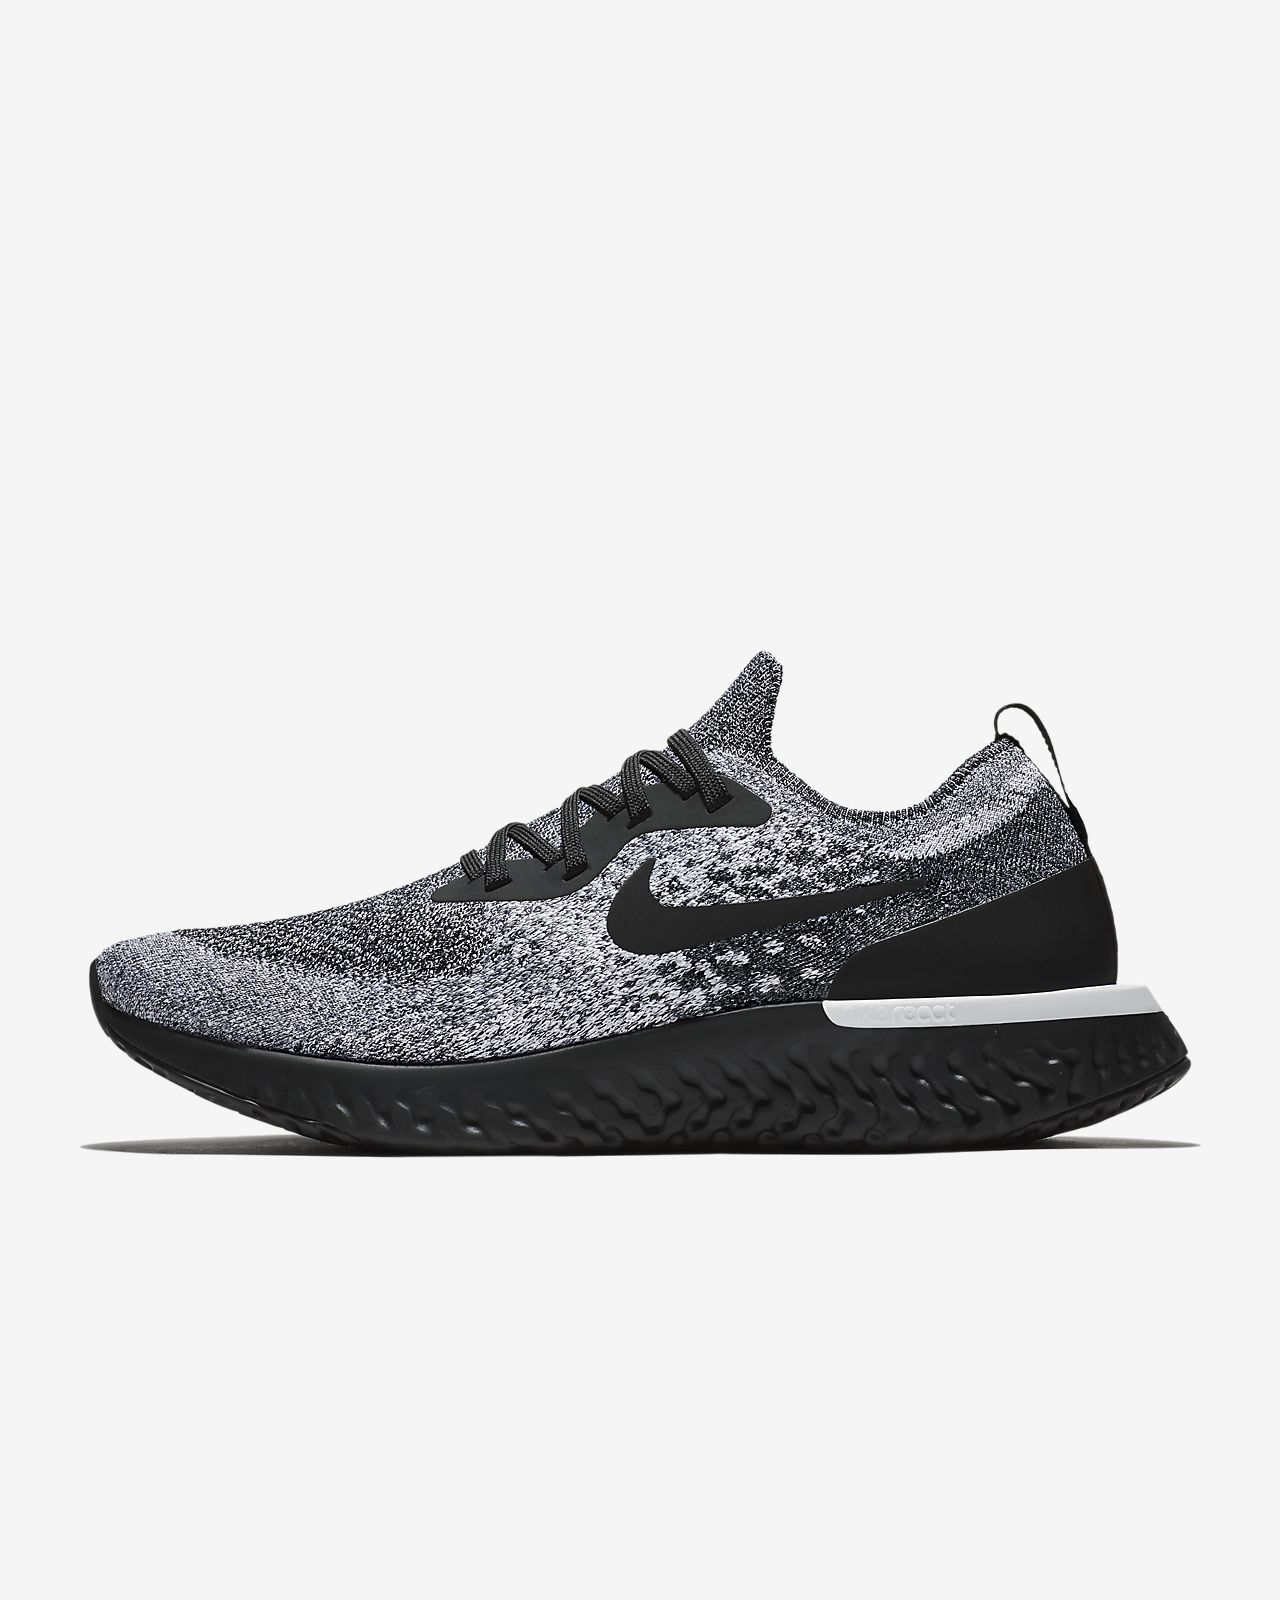 26a675b7a3a Nike Epic React Flyknit Men s Running Shoe. Nike.com ID